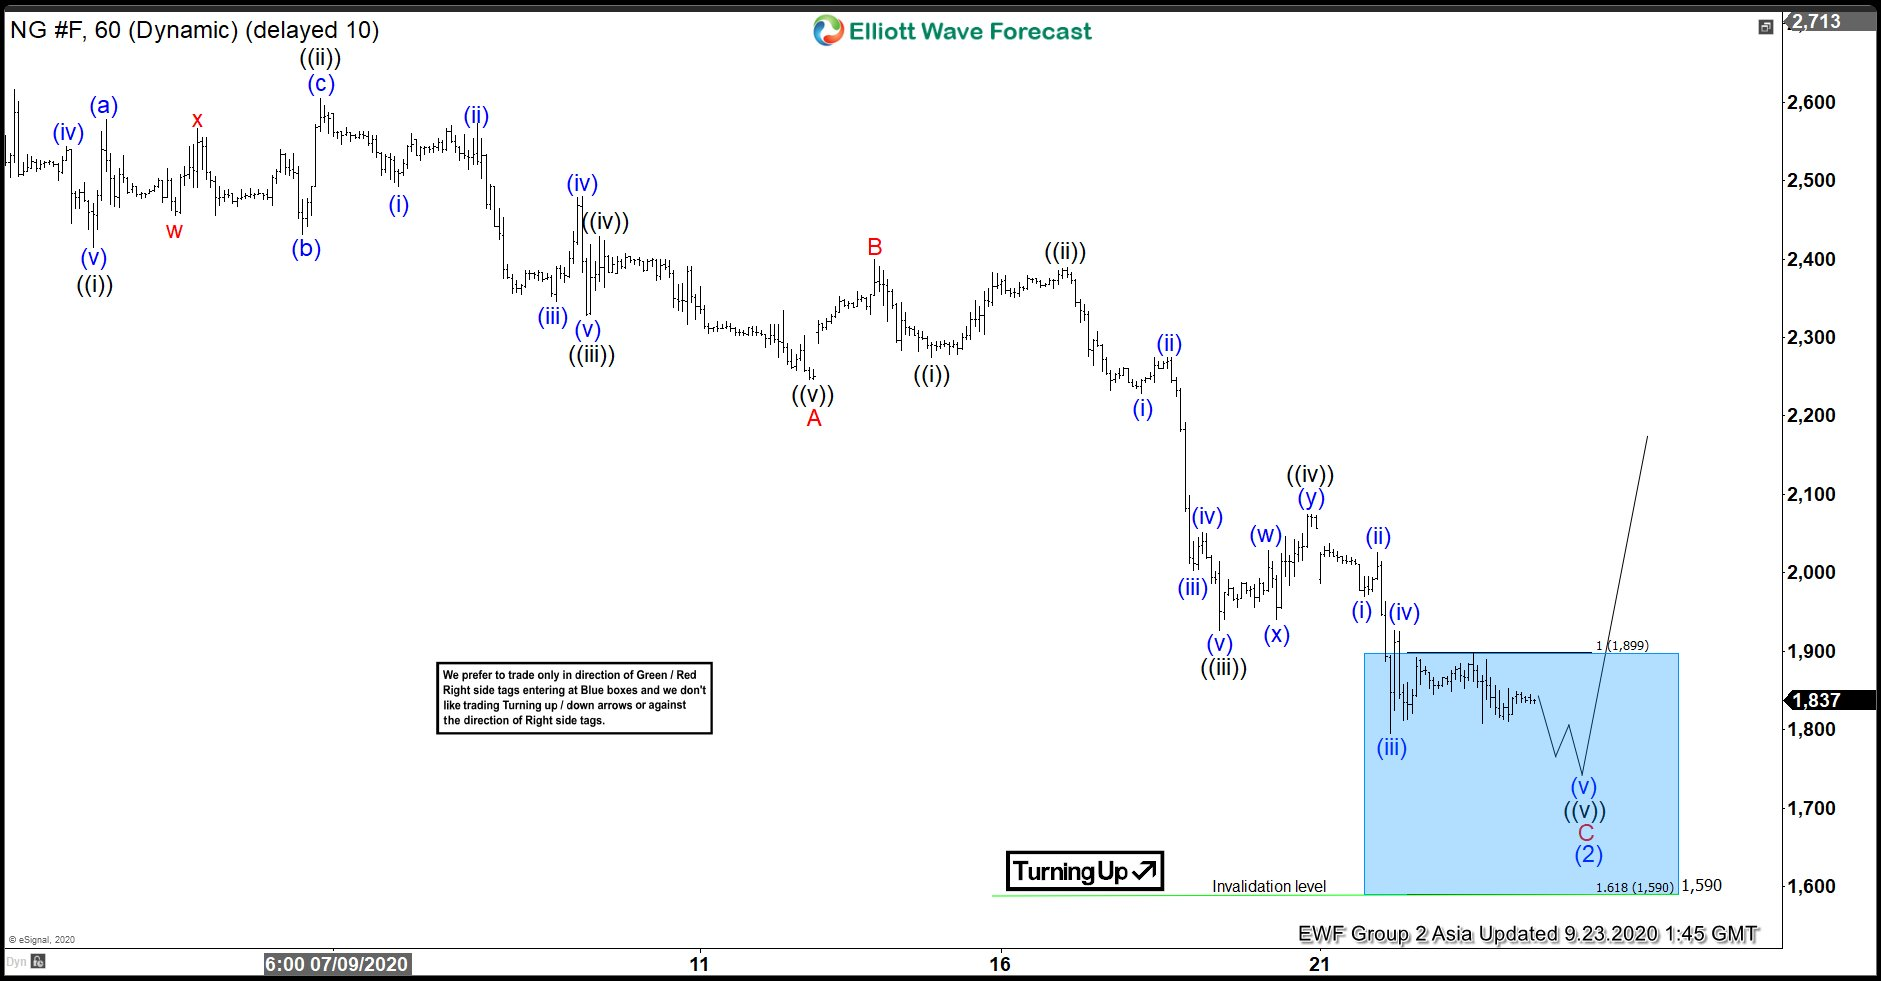 Natural Gas: Elliott Wave Hedging Called For A Minimum 3 Waves Reaction At Minimum